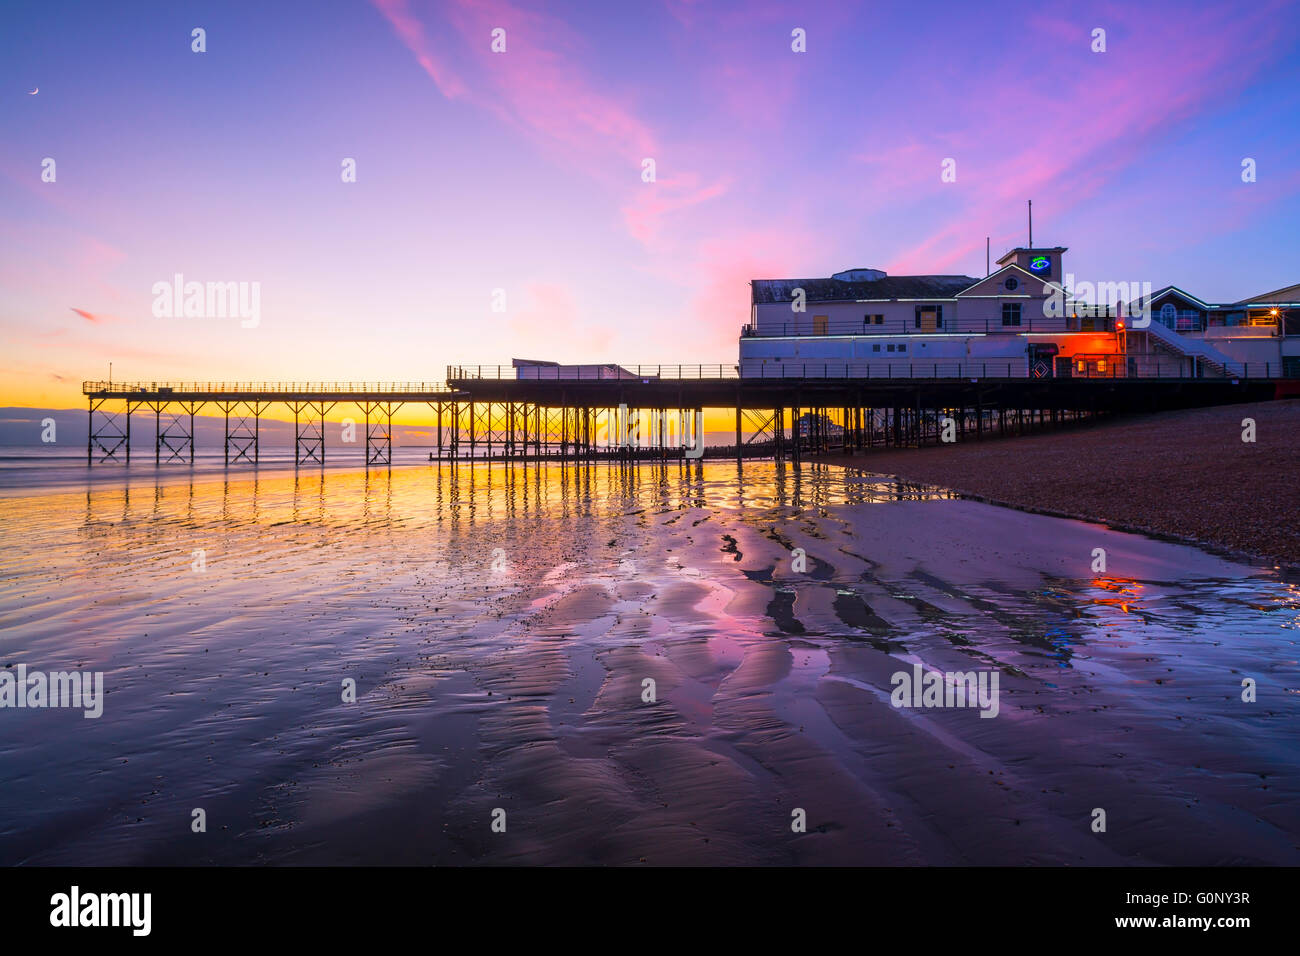 Wildlife Pictures From Bognor Regis To South Africa Are: Bognor Regis Pier Stock Photo: 103744475